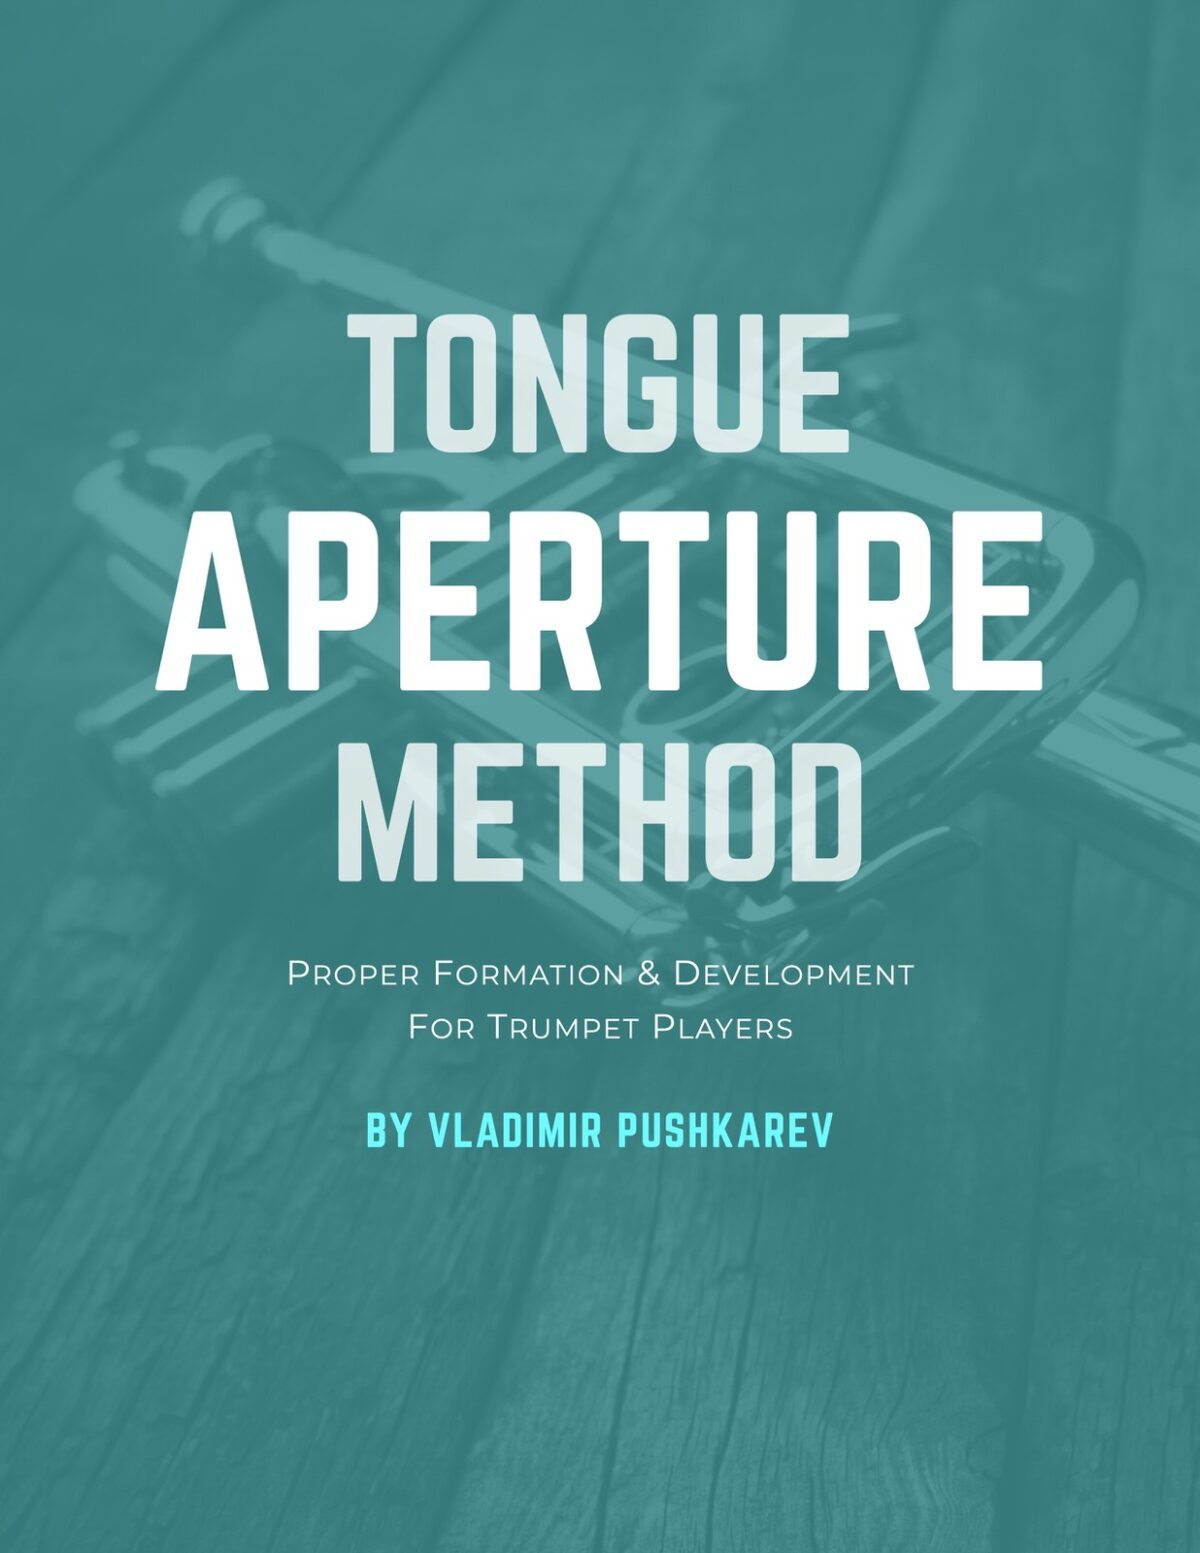 Pushkarev, Tongue Aperture Method-p01